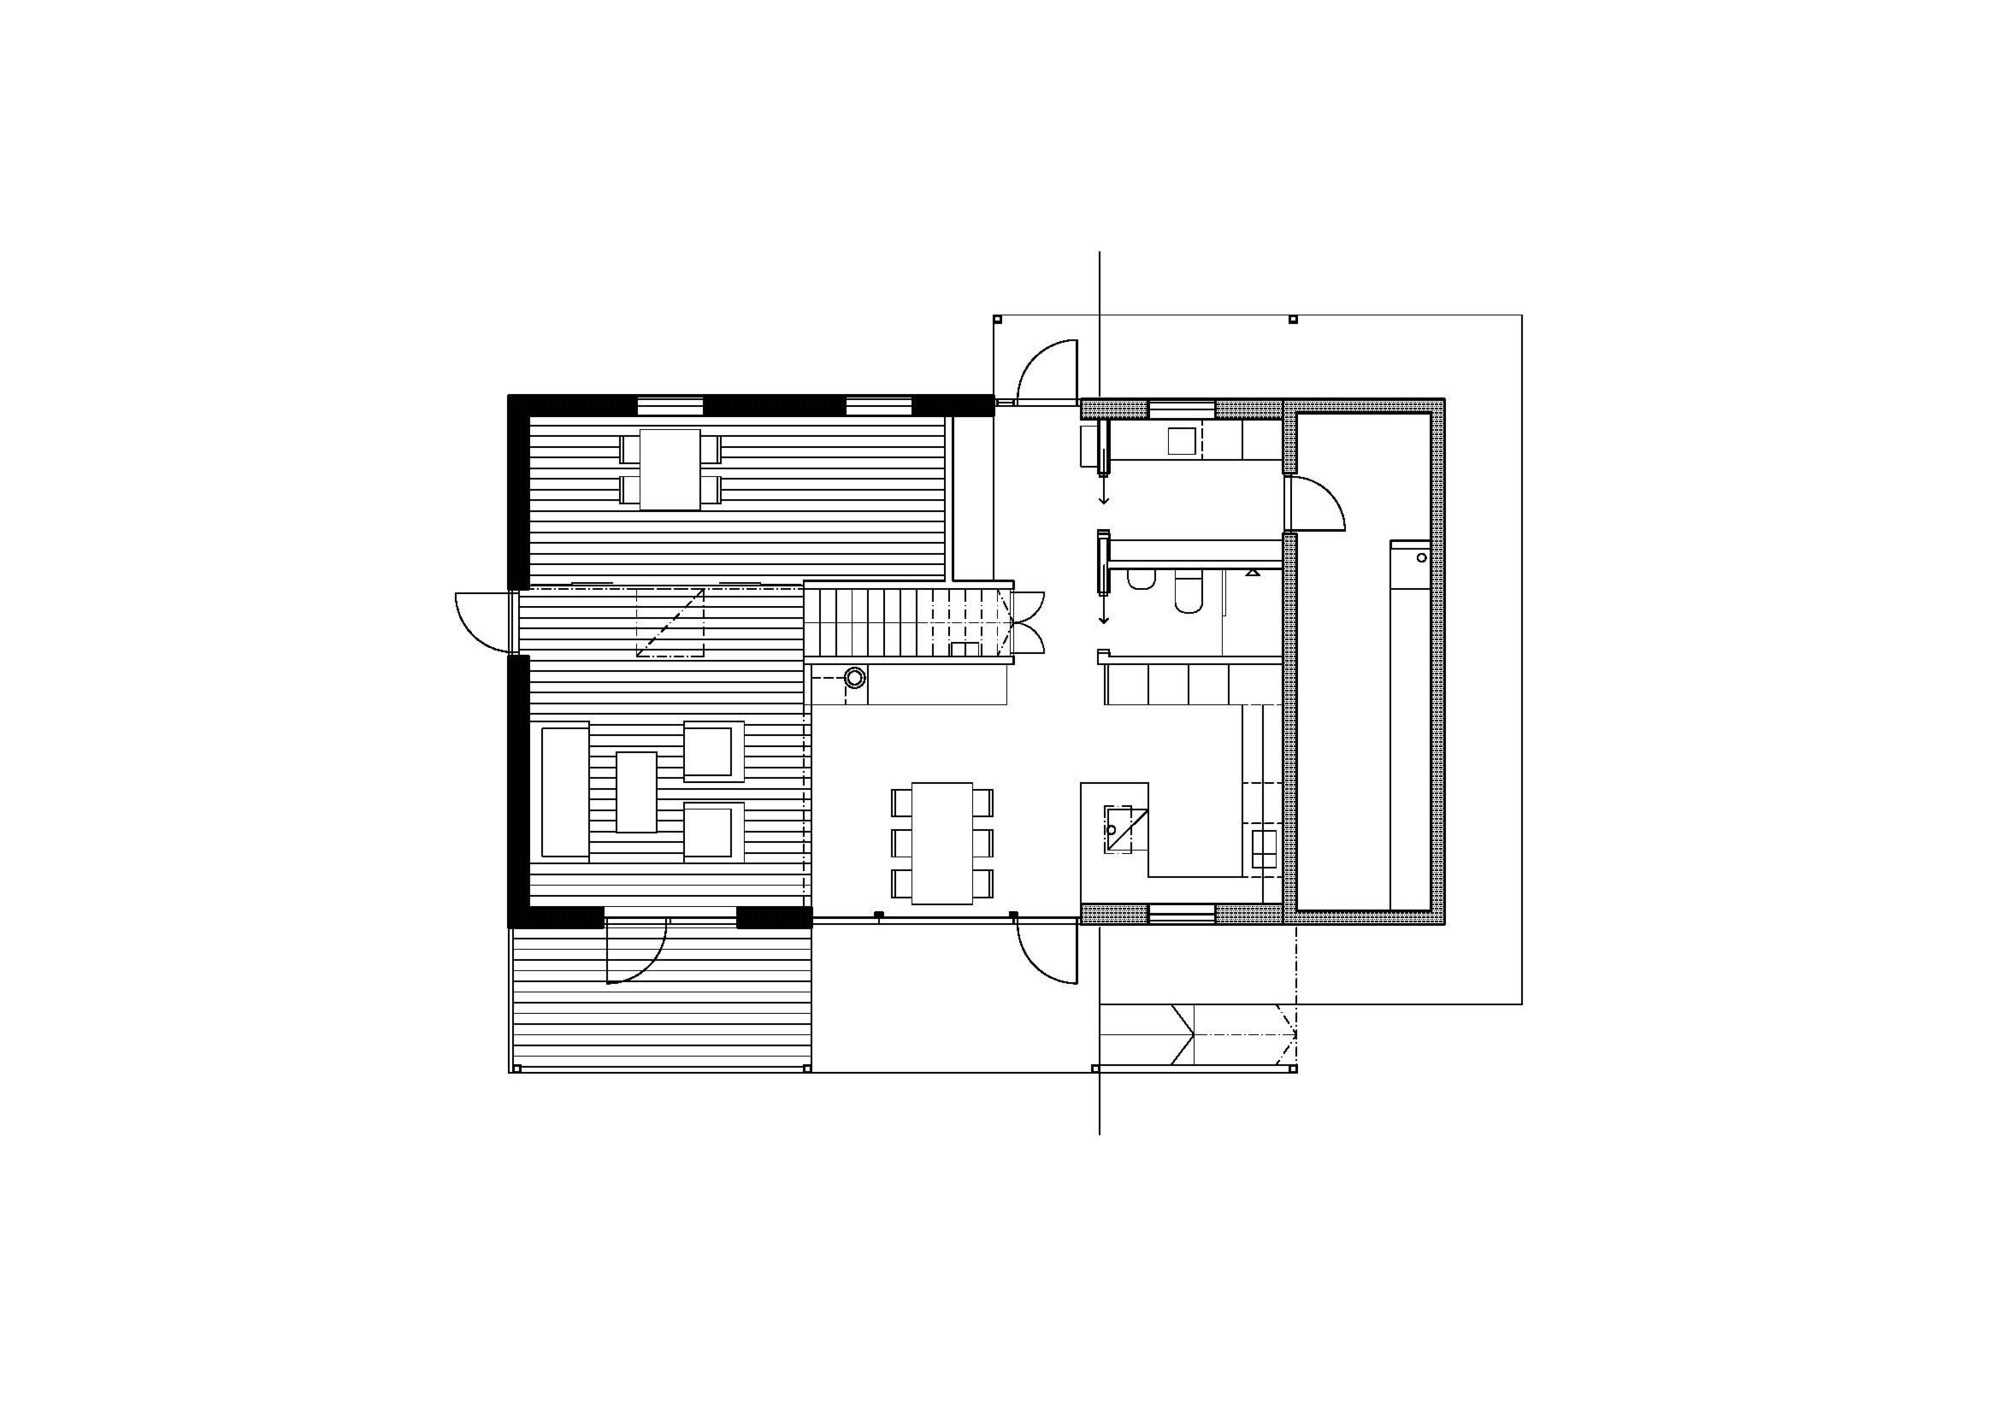 52706477e8e44ee8e10006e1 Green Bean Arctic Studio Floor Plan on Residential Floor Plans